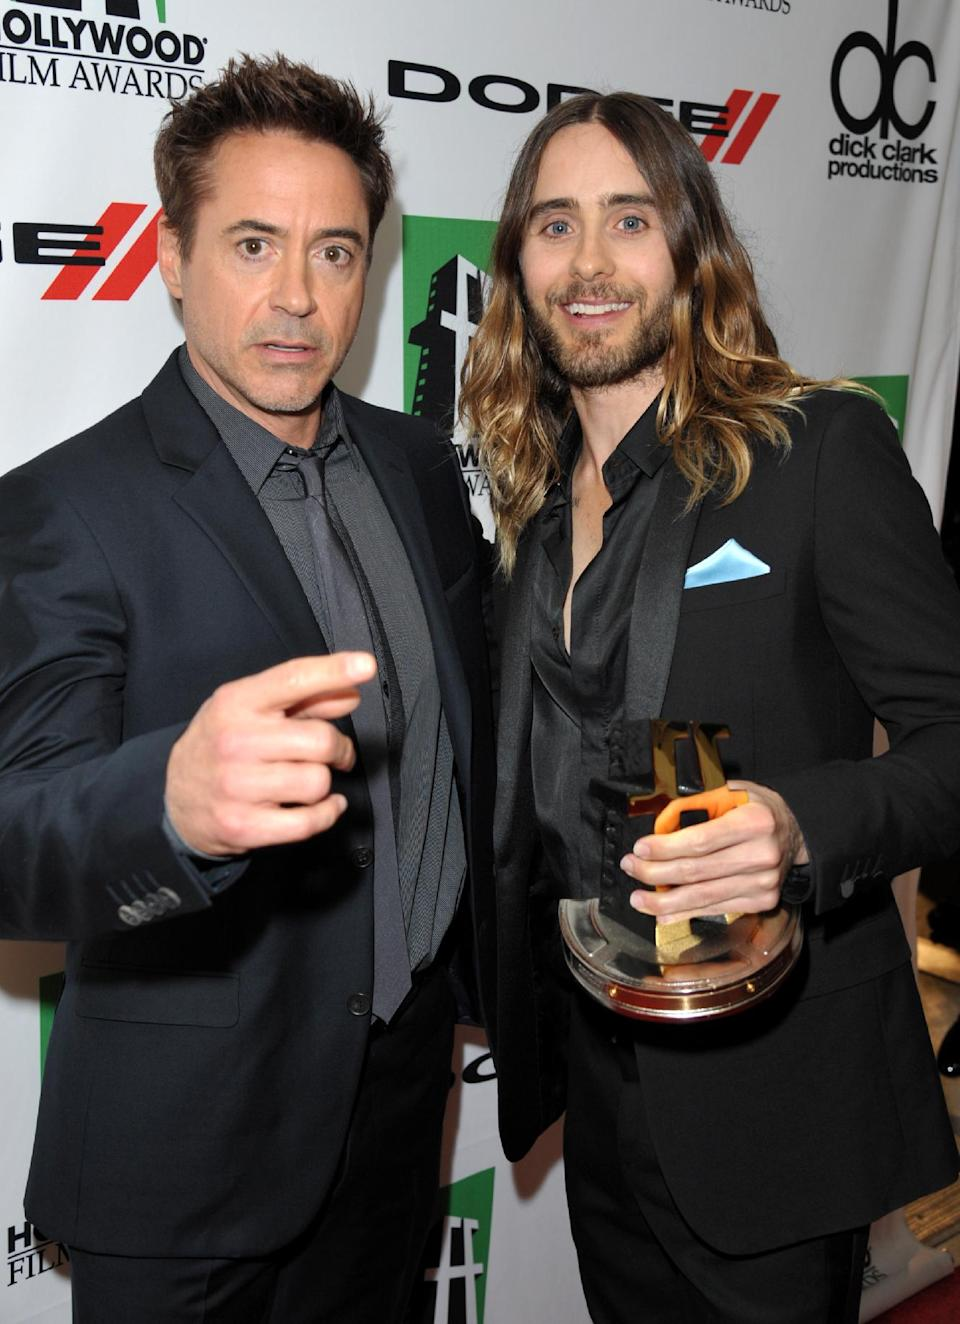 Robert Downey Jr. , left, and Jared Leto, winner of the Hollywood breakout performance award, pose backstage at the 17th Annual Hollywood Film Awards Gala at the Beverly Hilton Hotel on Monday, Oct. 21, 2013, in Beverly Hills, Calif. (Photo by John Shearer/Invision/AP)